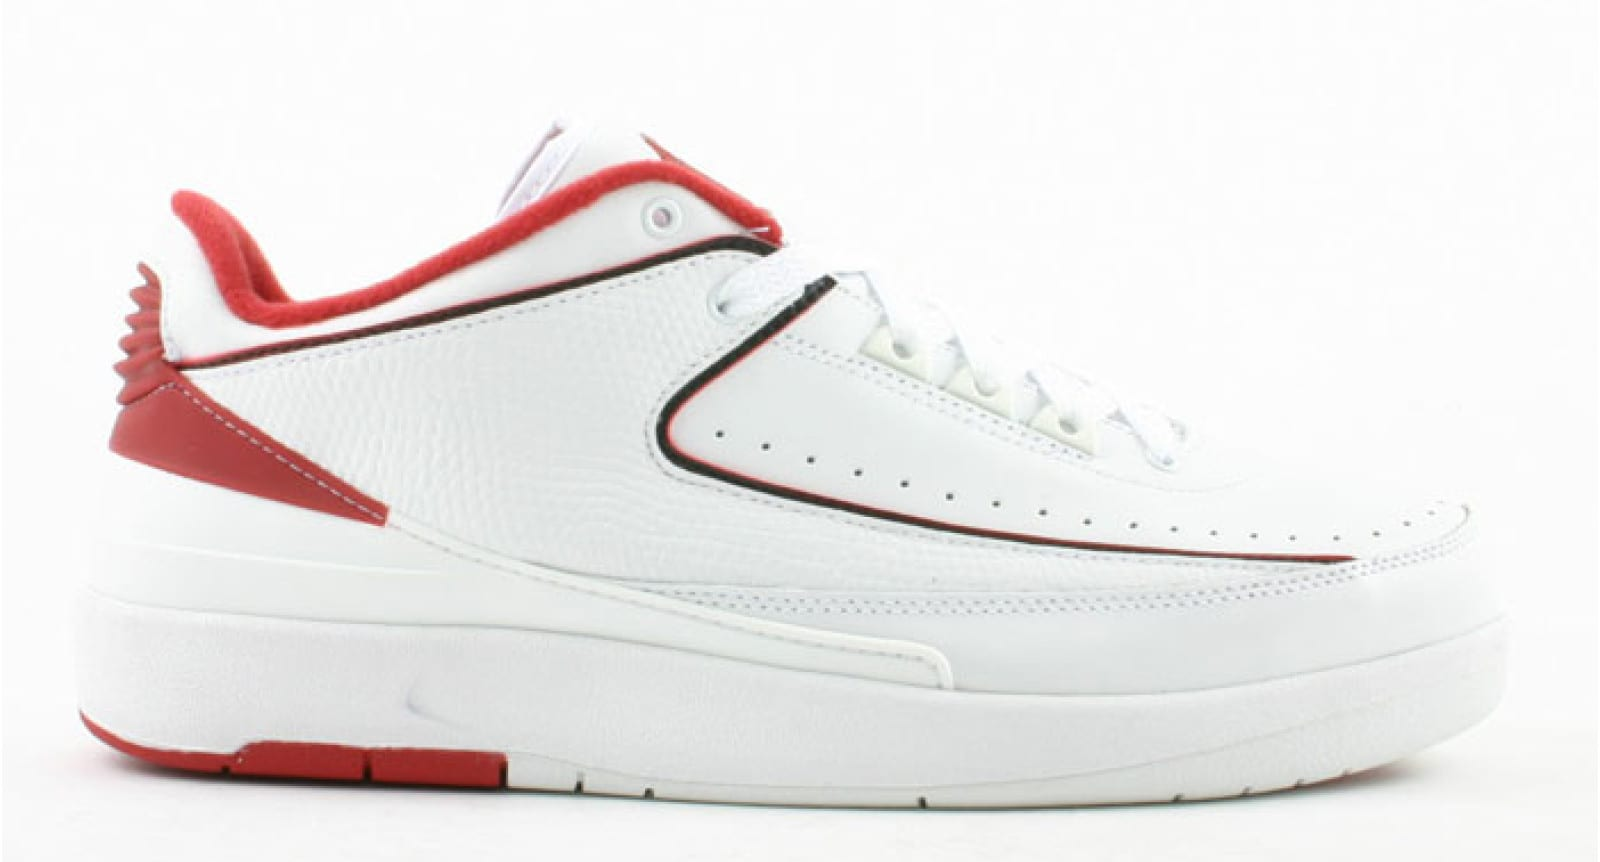 Air Jordan 2 Low 'White/Red'